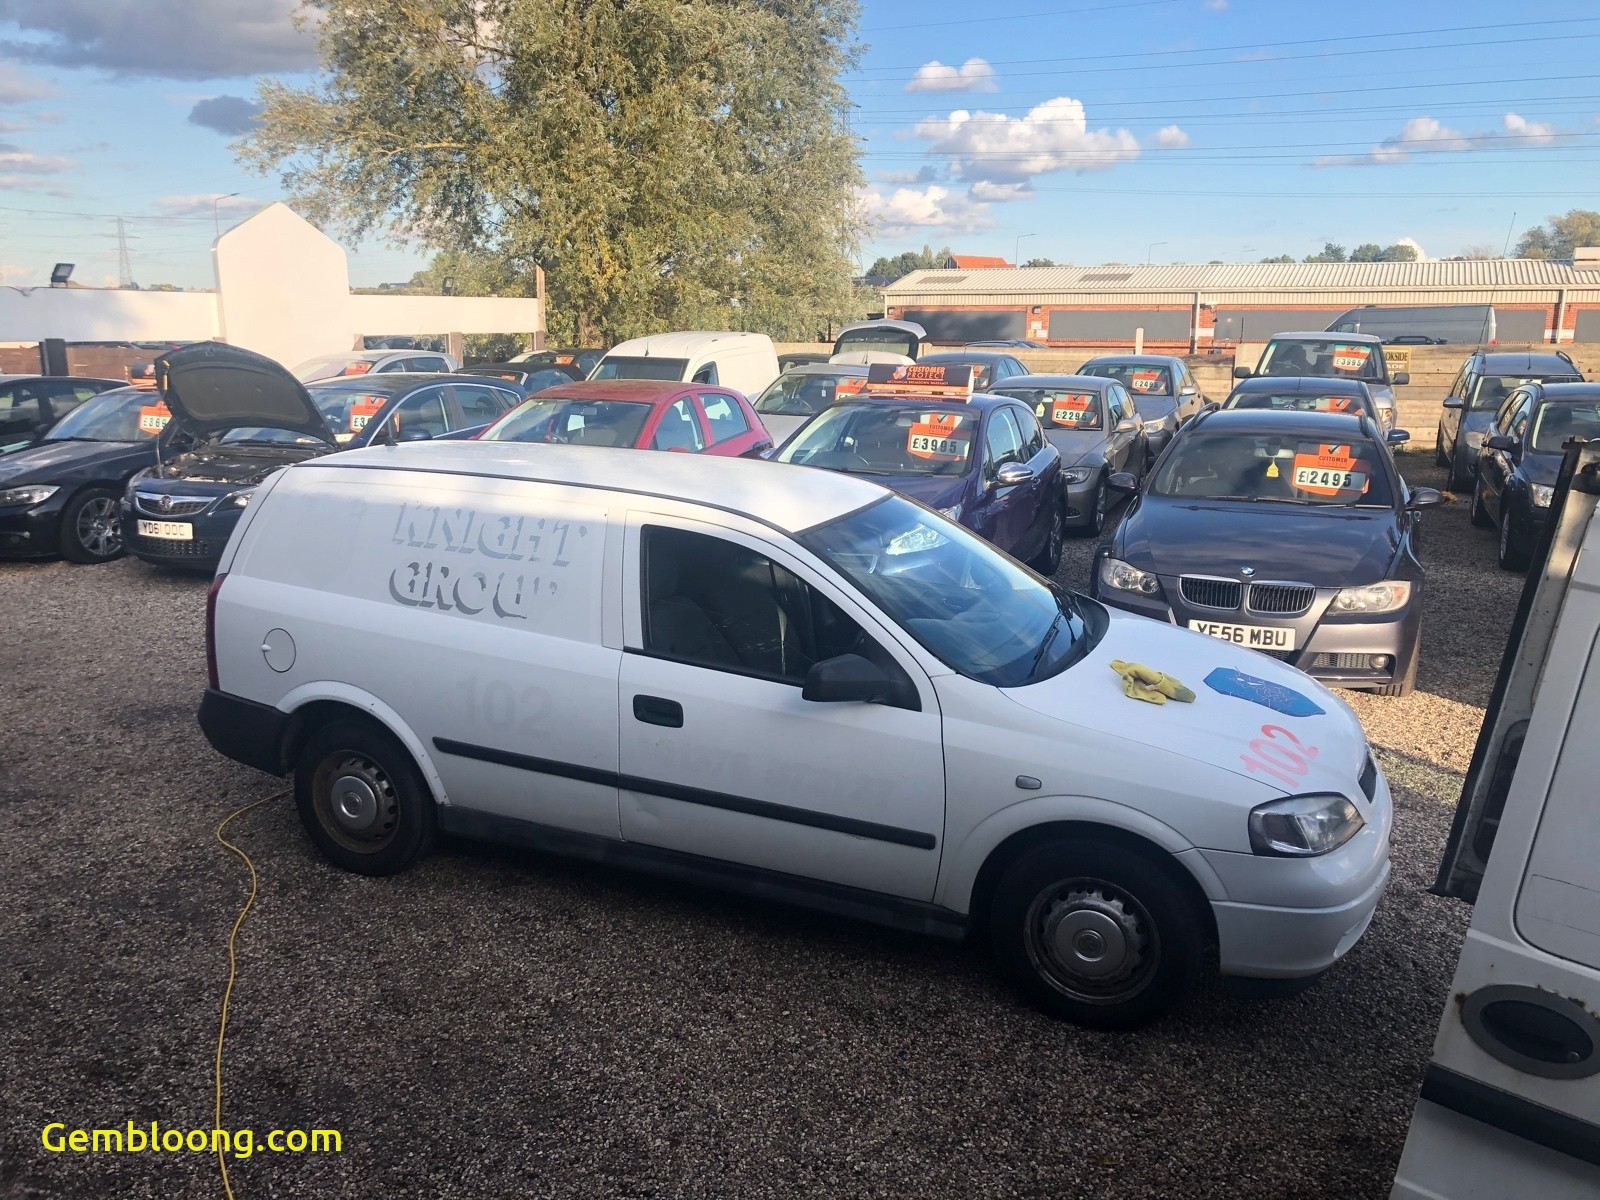 Looking to Buy A Used Car Unique 2002 Vauxhall astra Envoy Dti £500